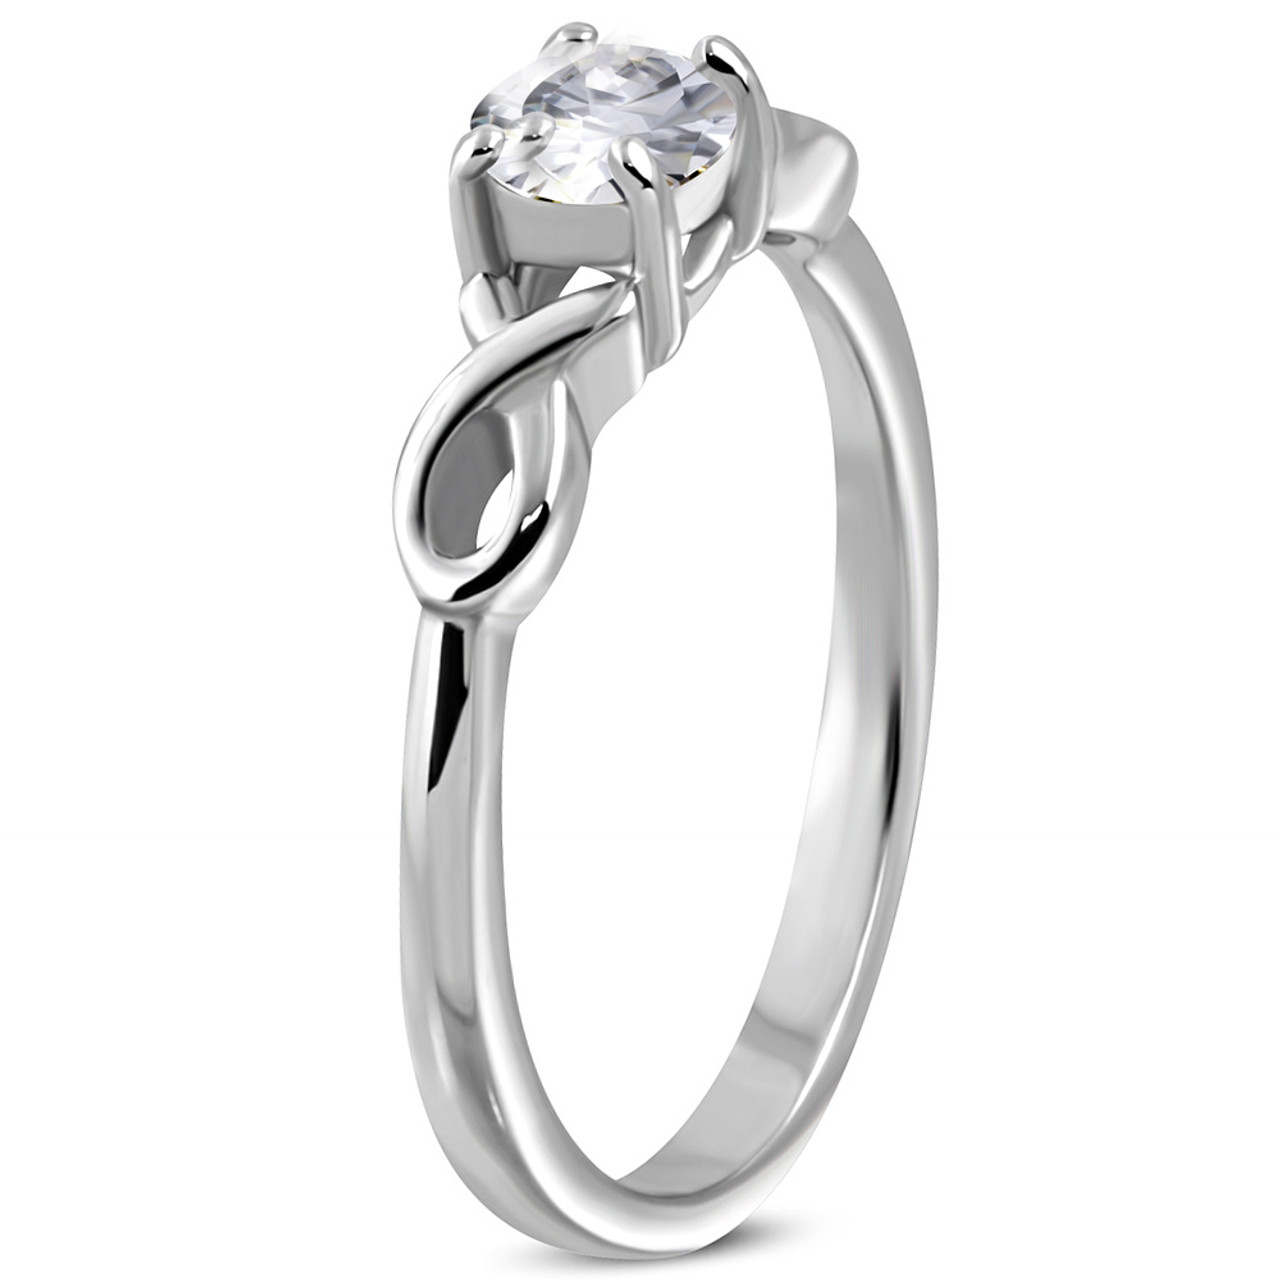 Stainless Steel Prong-Set Round Circle Bypass Fancy Ring with Clear CZ